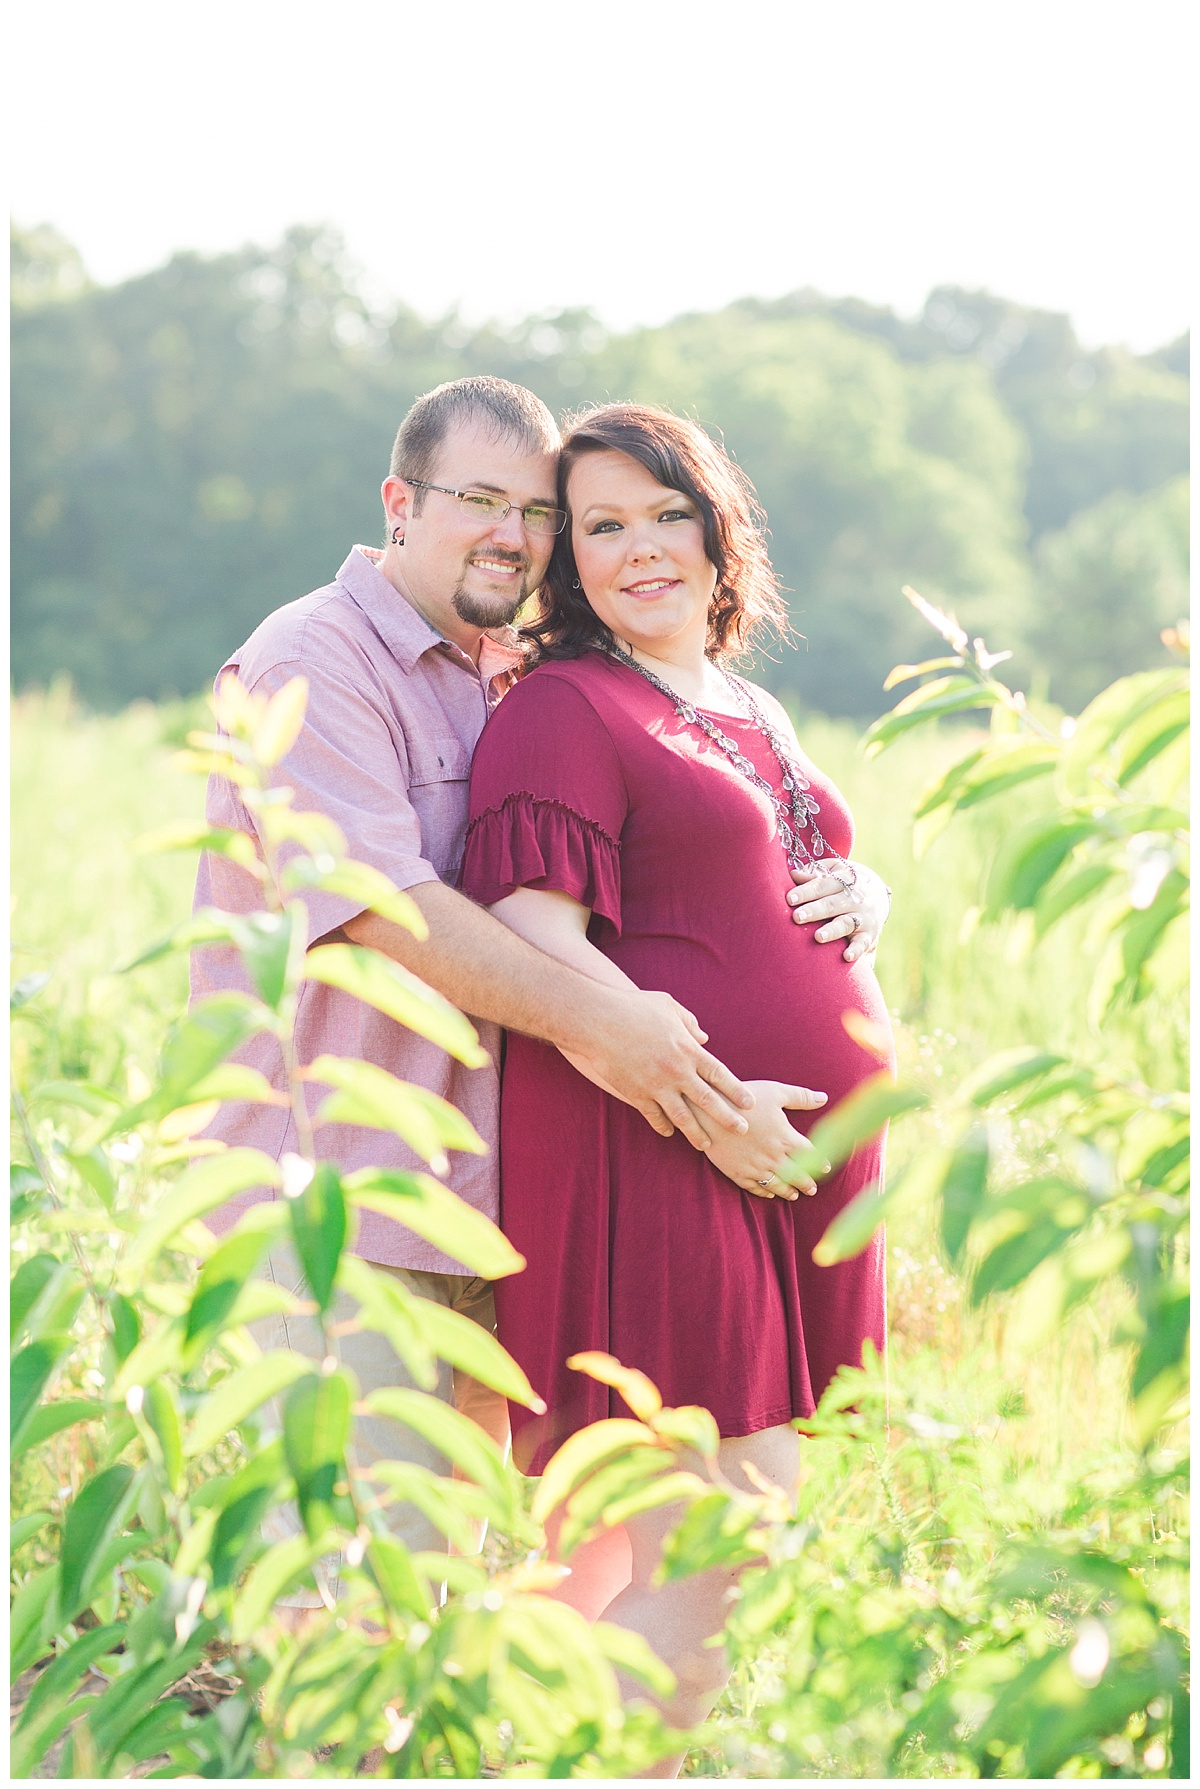 monroe_ga_maternity_photography_0023.jpg